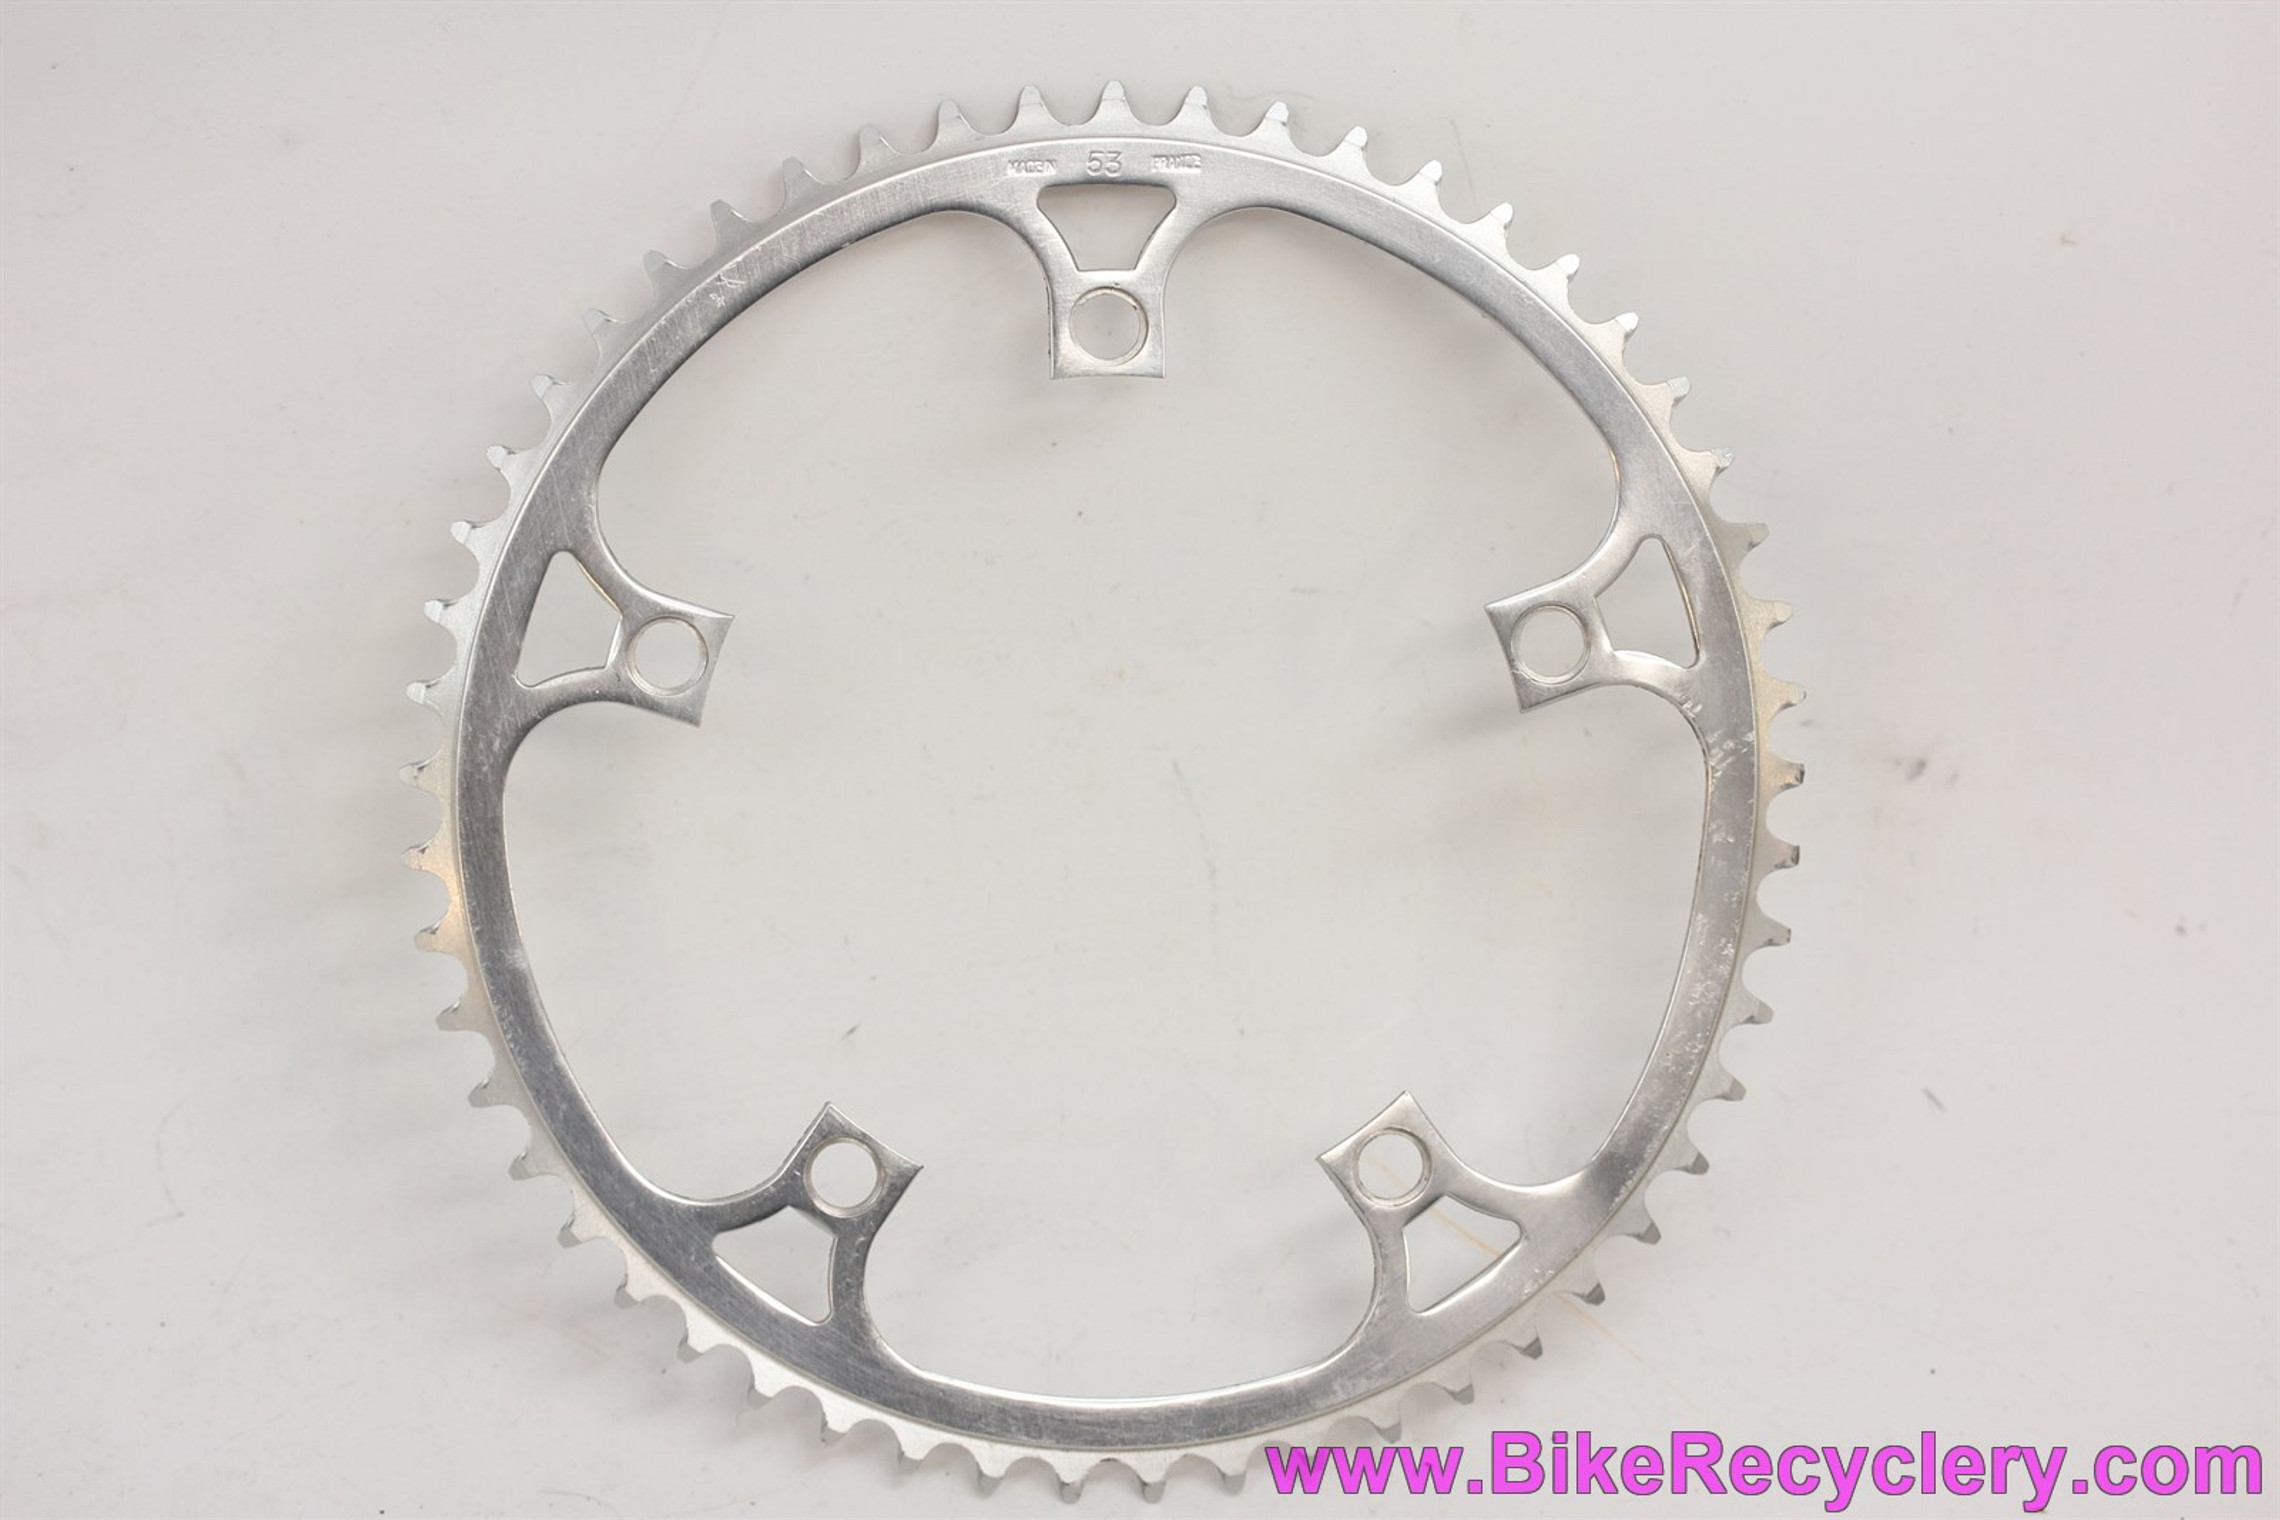 T.A. Competition Chainring: 53t x 144mm - 1970's Vintage (MINT)